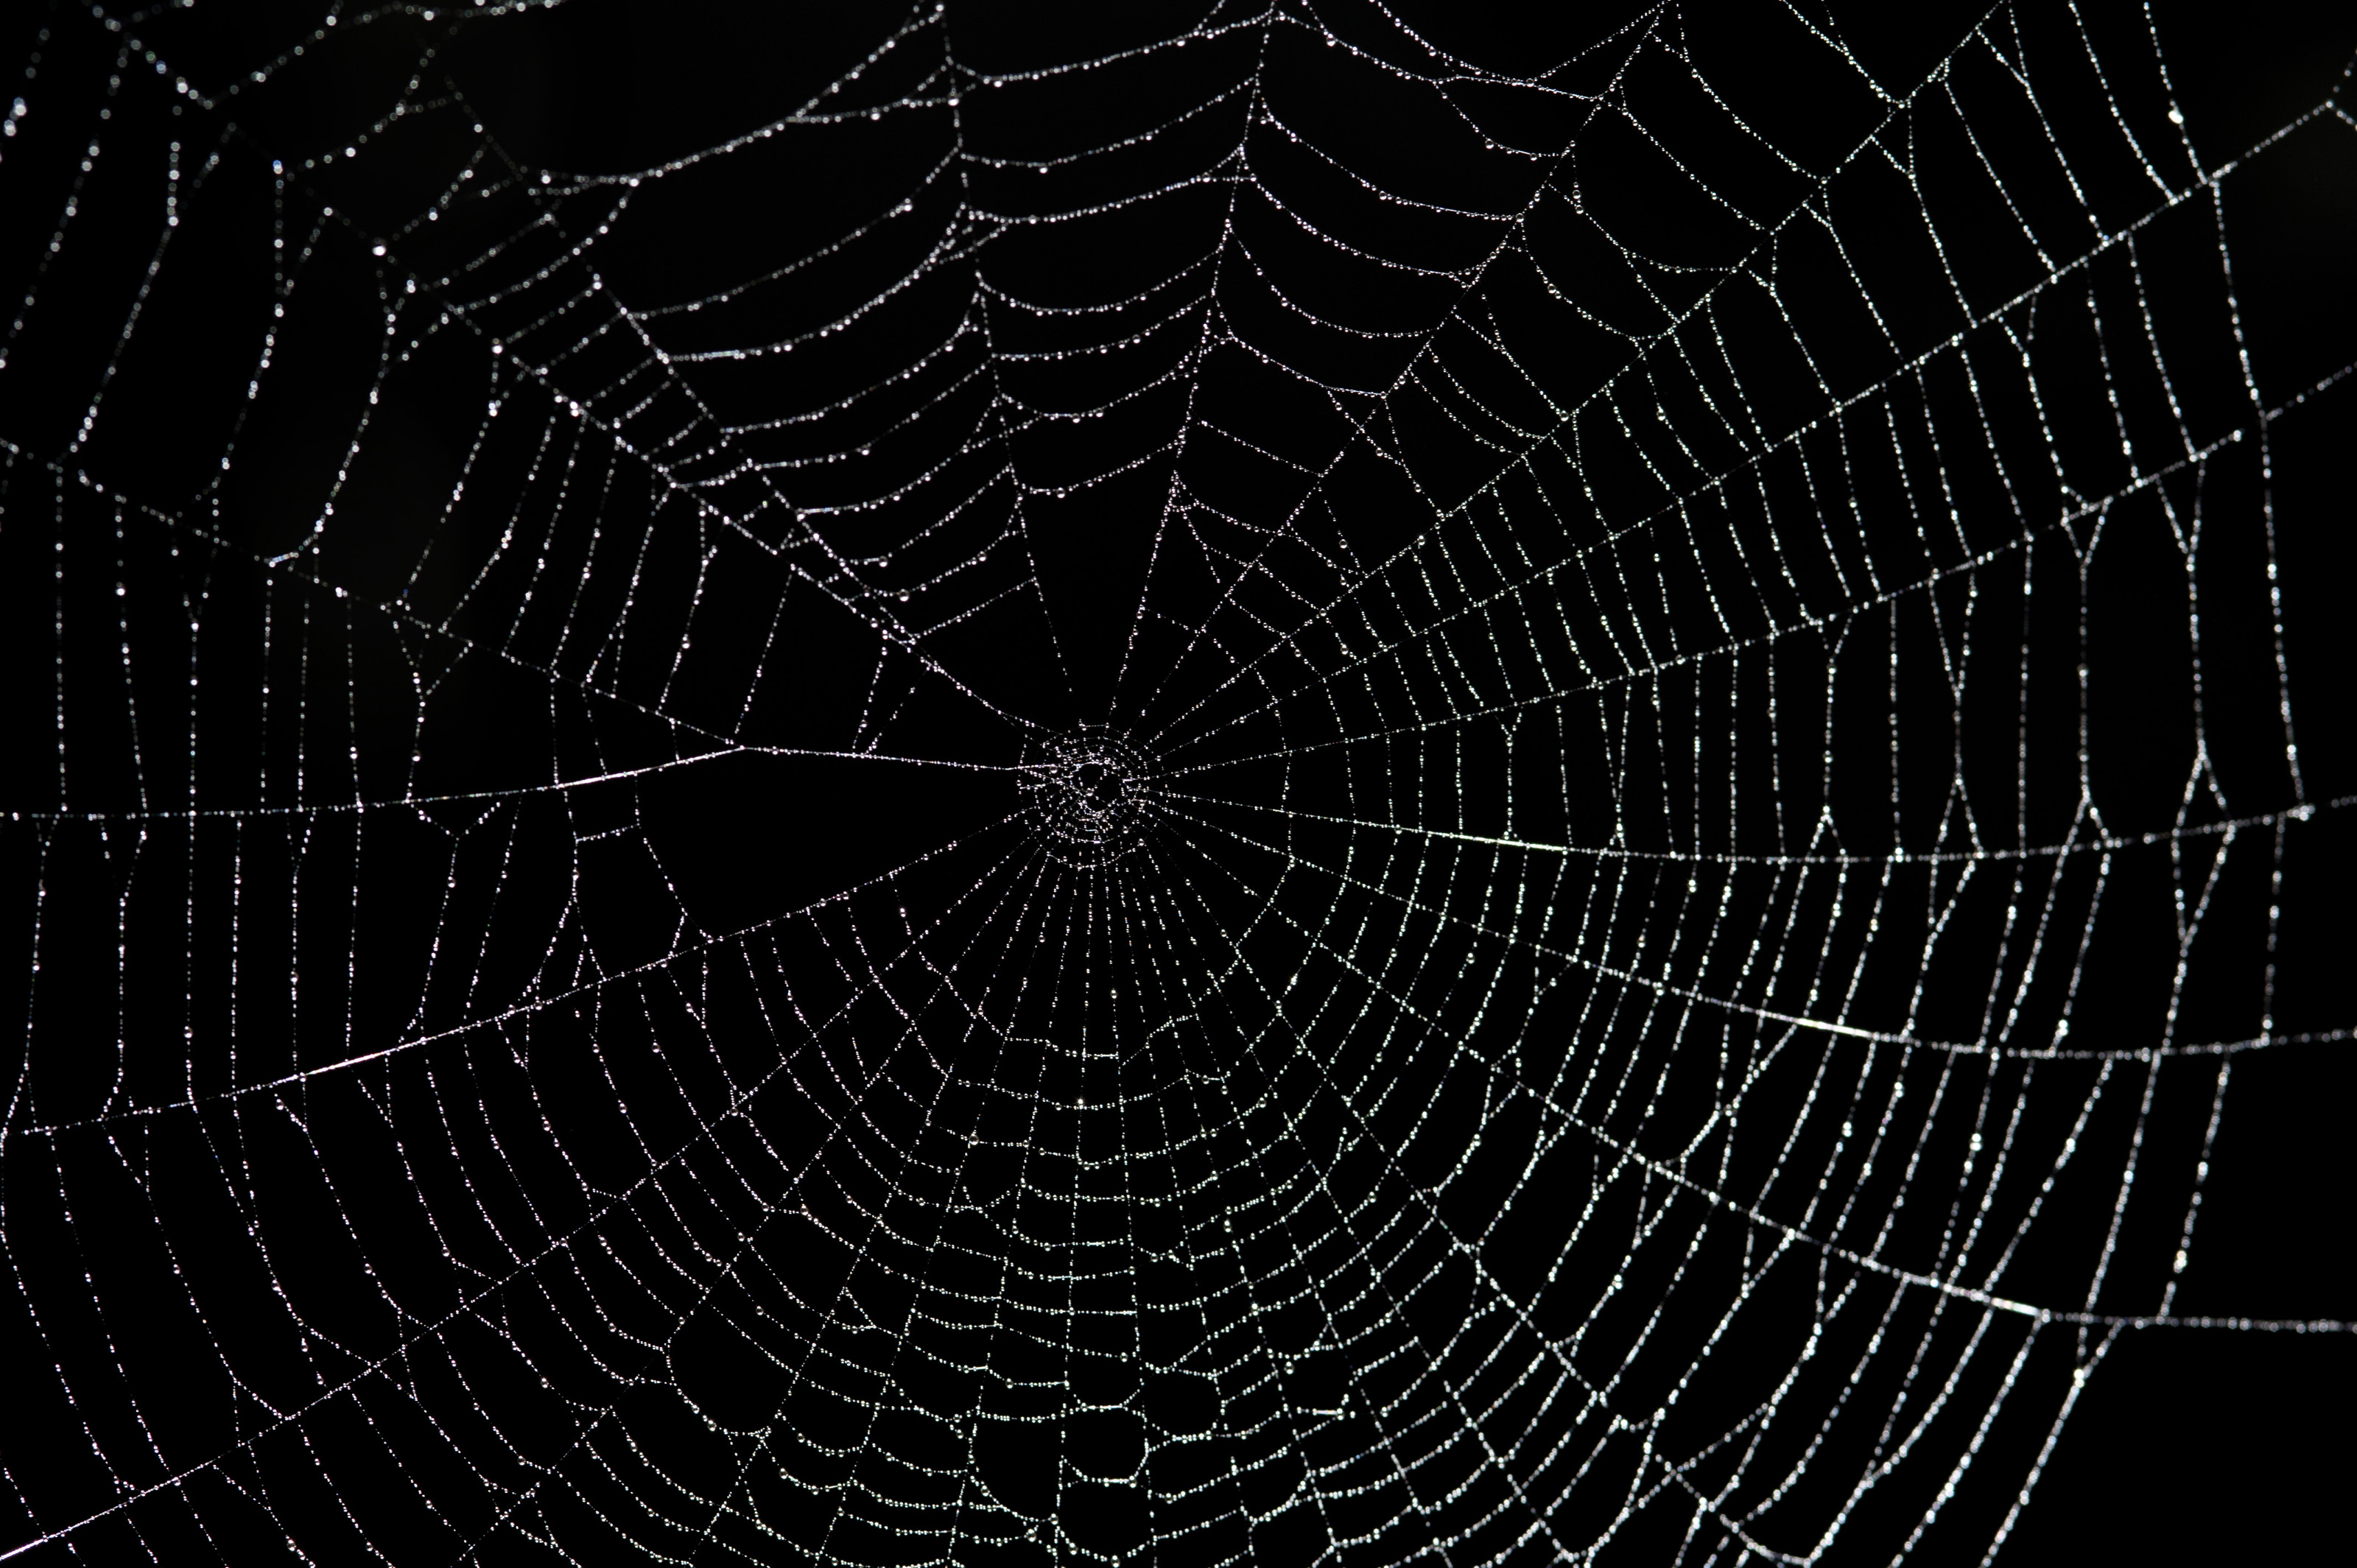 1000+ images about Beautiful Spider Webs on Pinterest ...